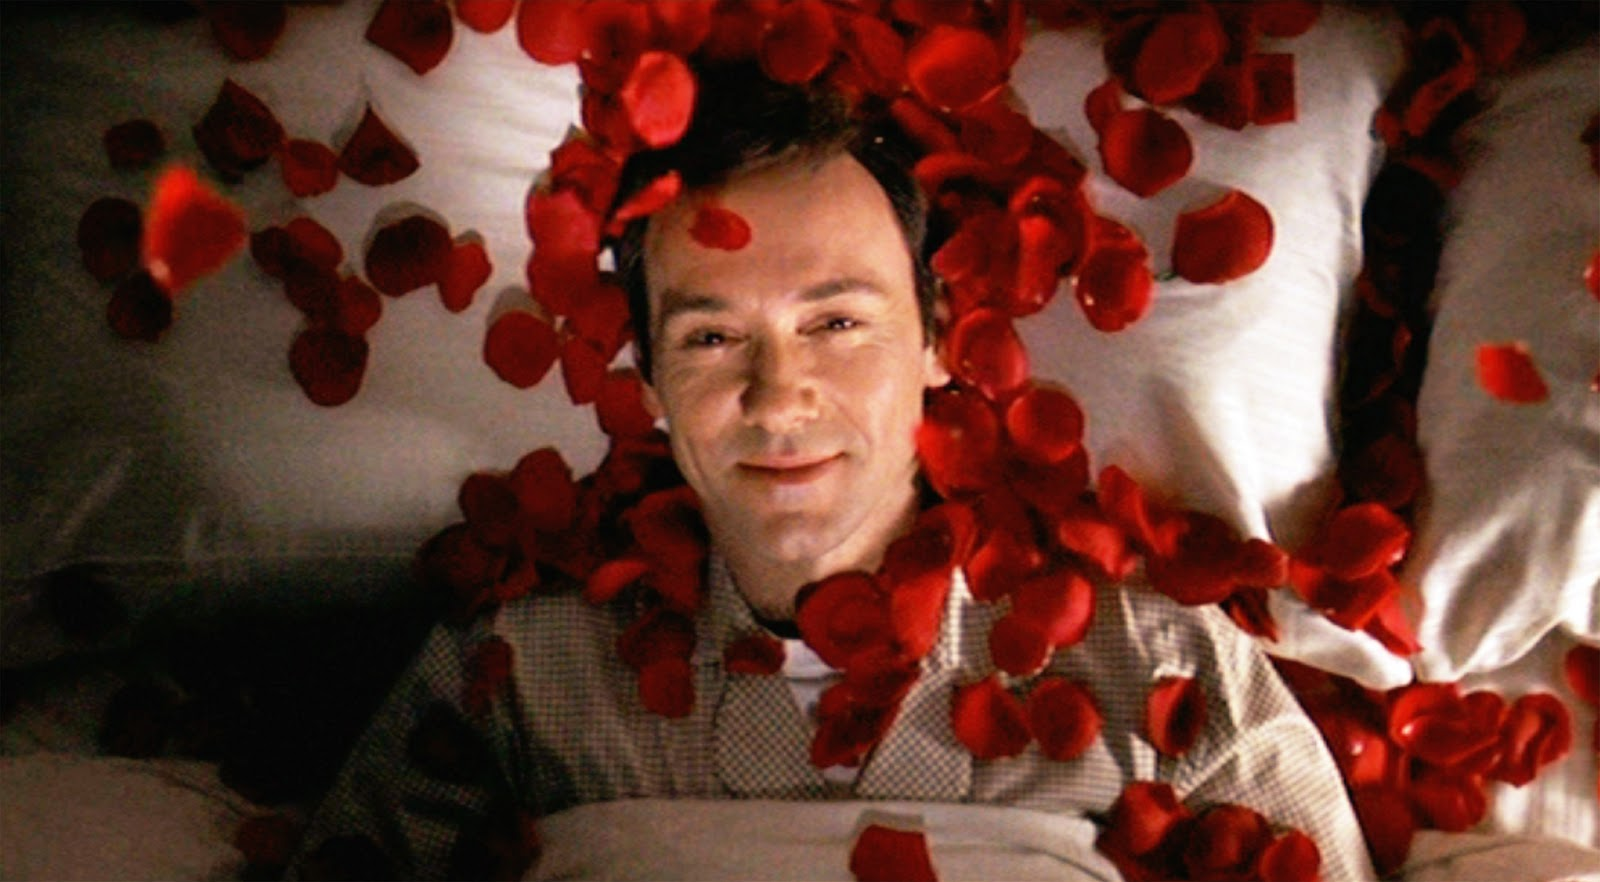 the red rose in american beauty